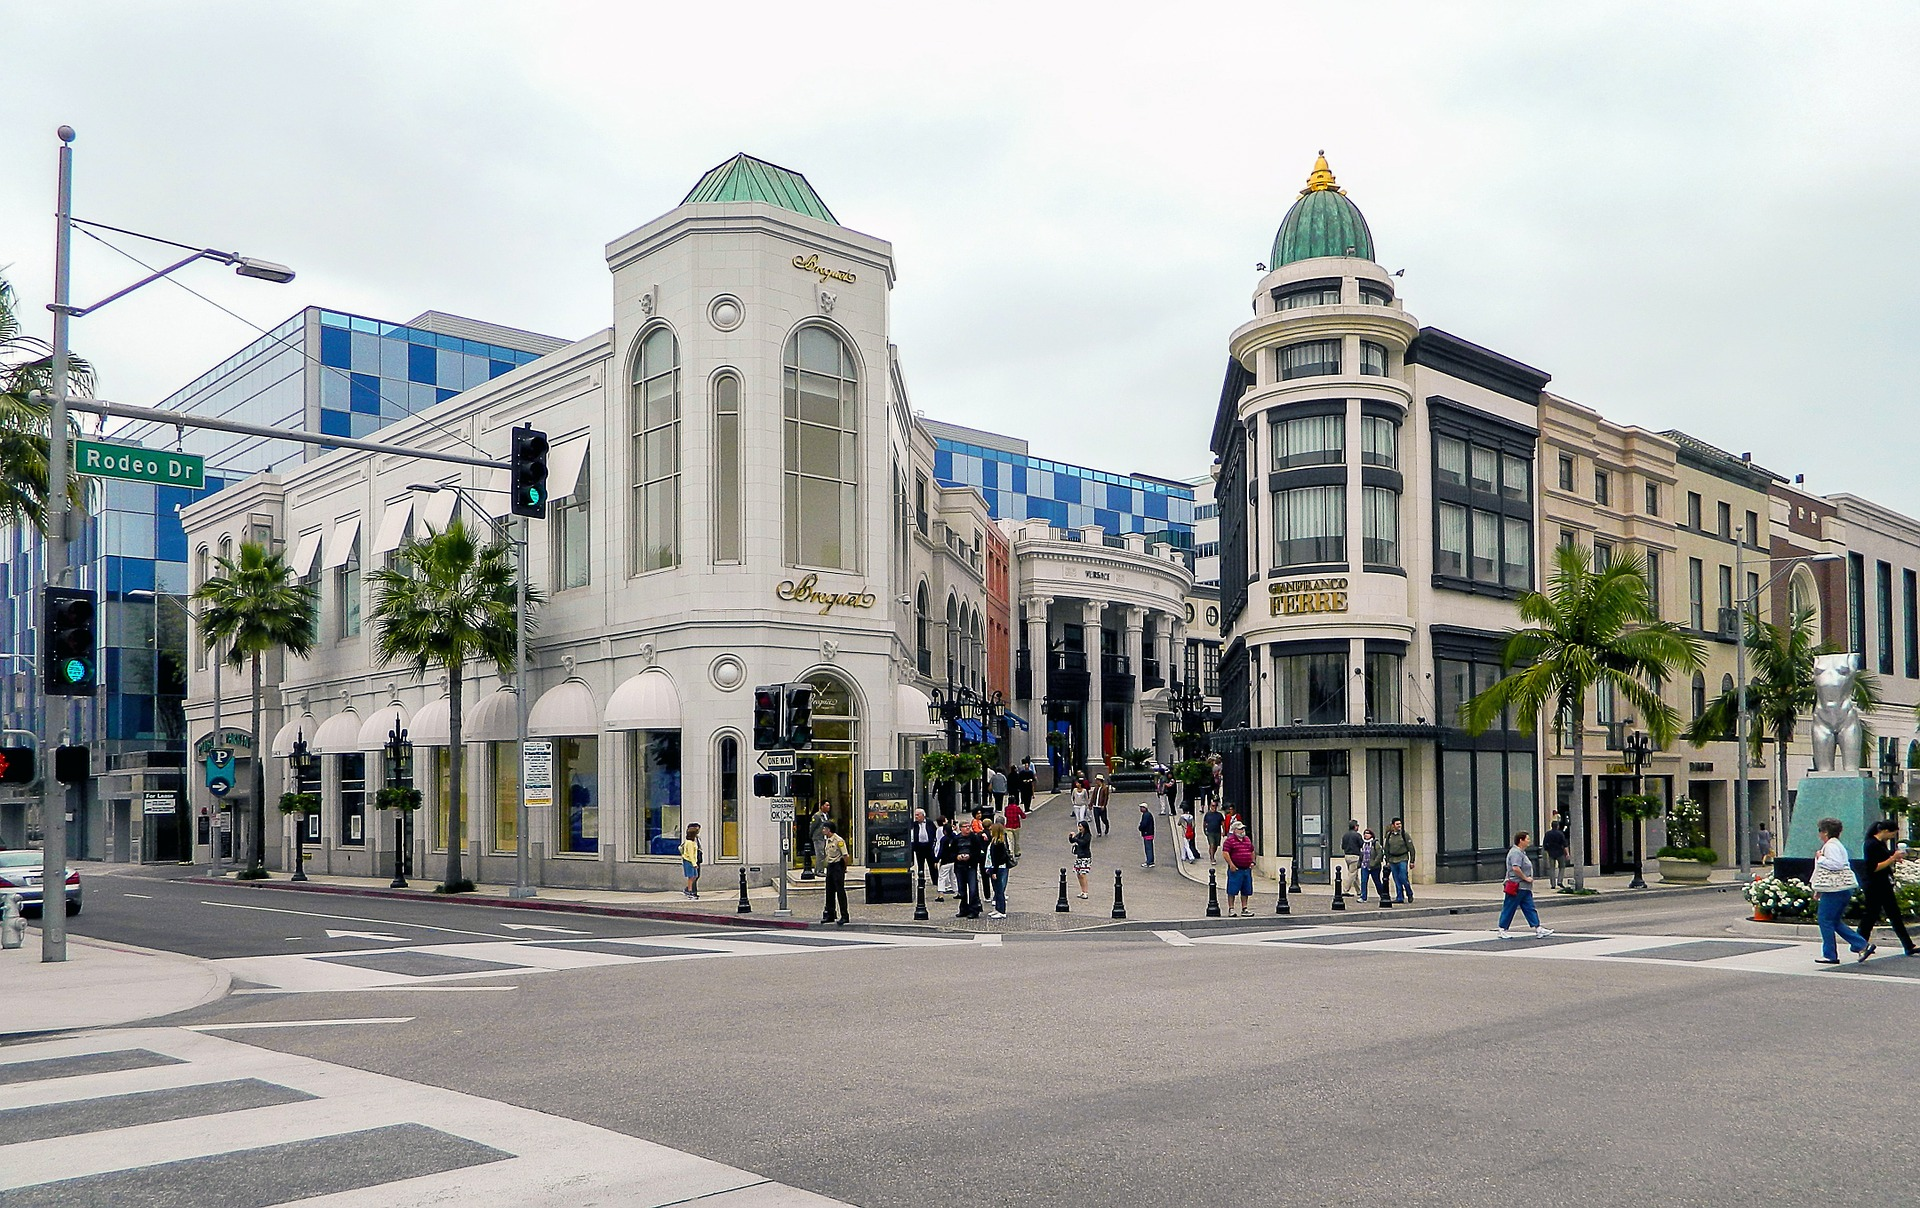 Shops on Rodeo Drive, Los Angeles